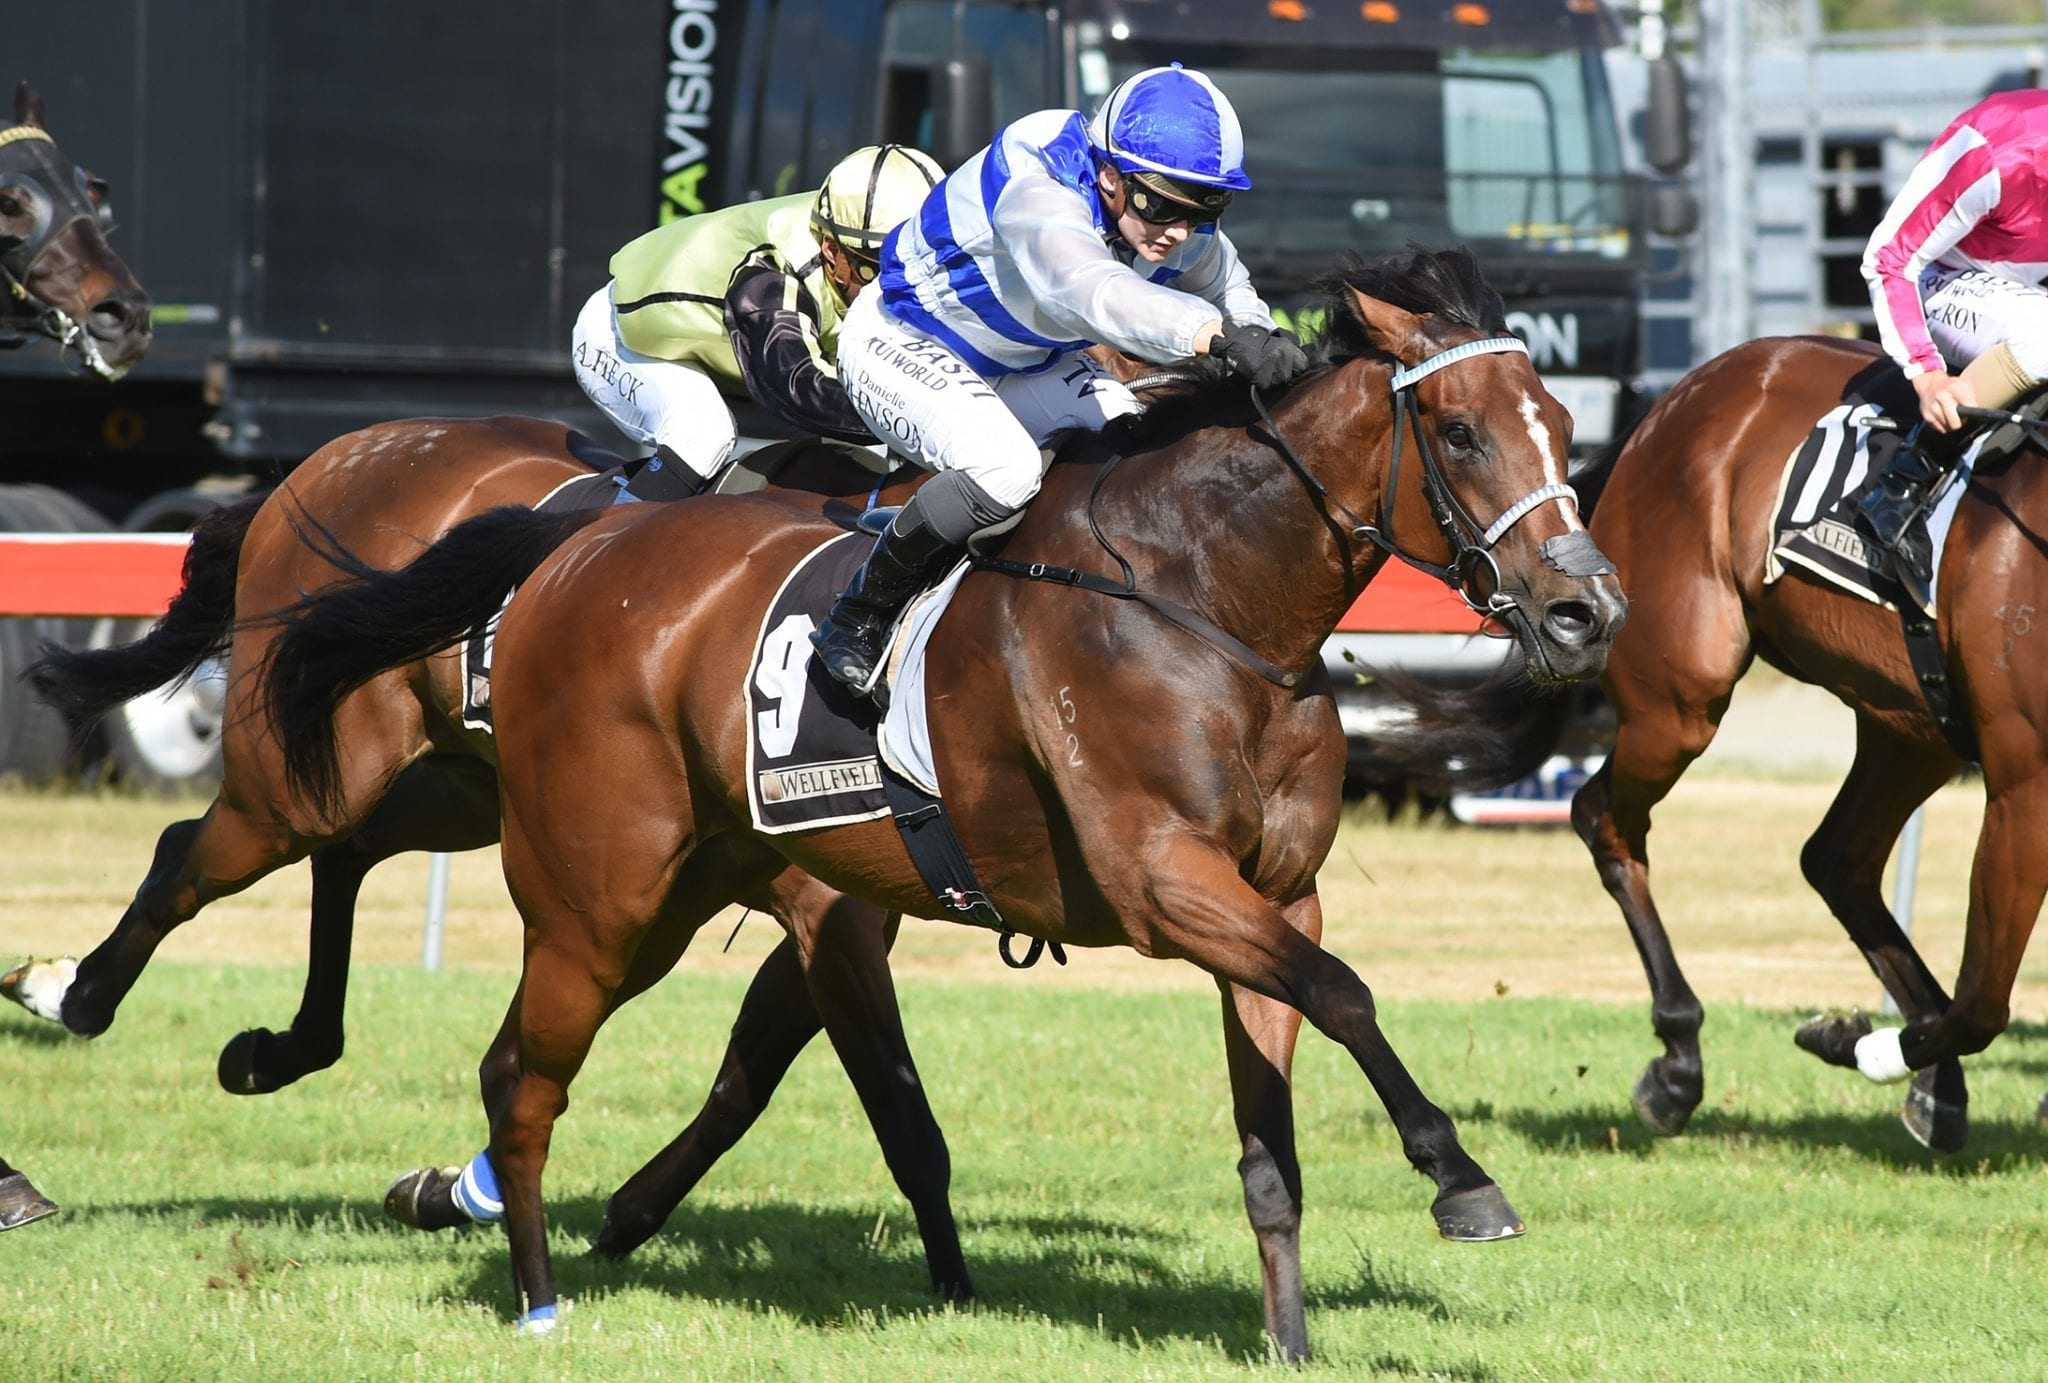 Seraphim overcomes pre-race mishap to win yesterday at Trentham